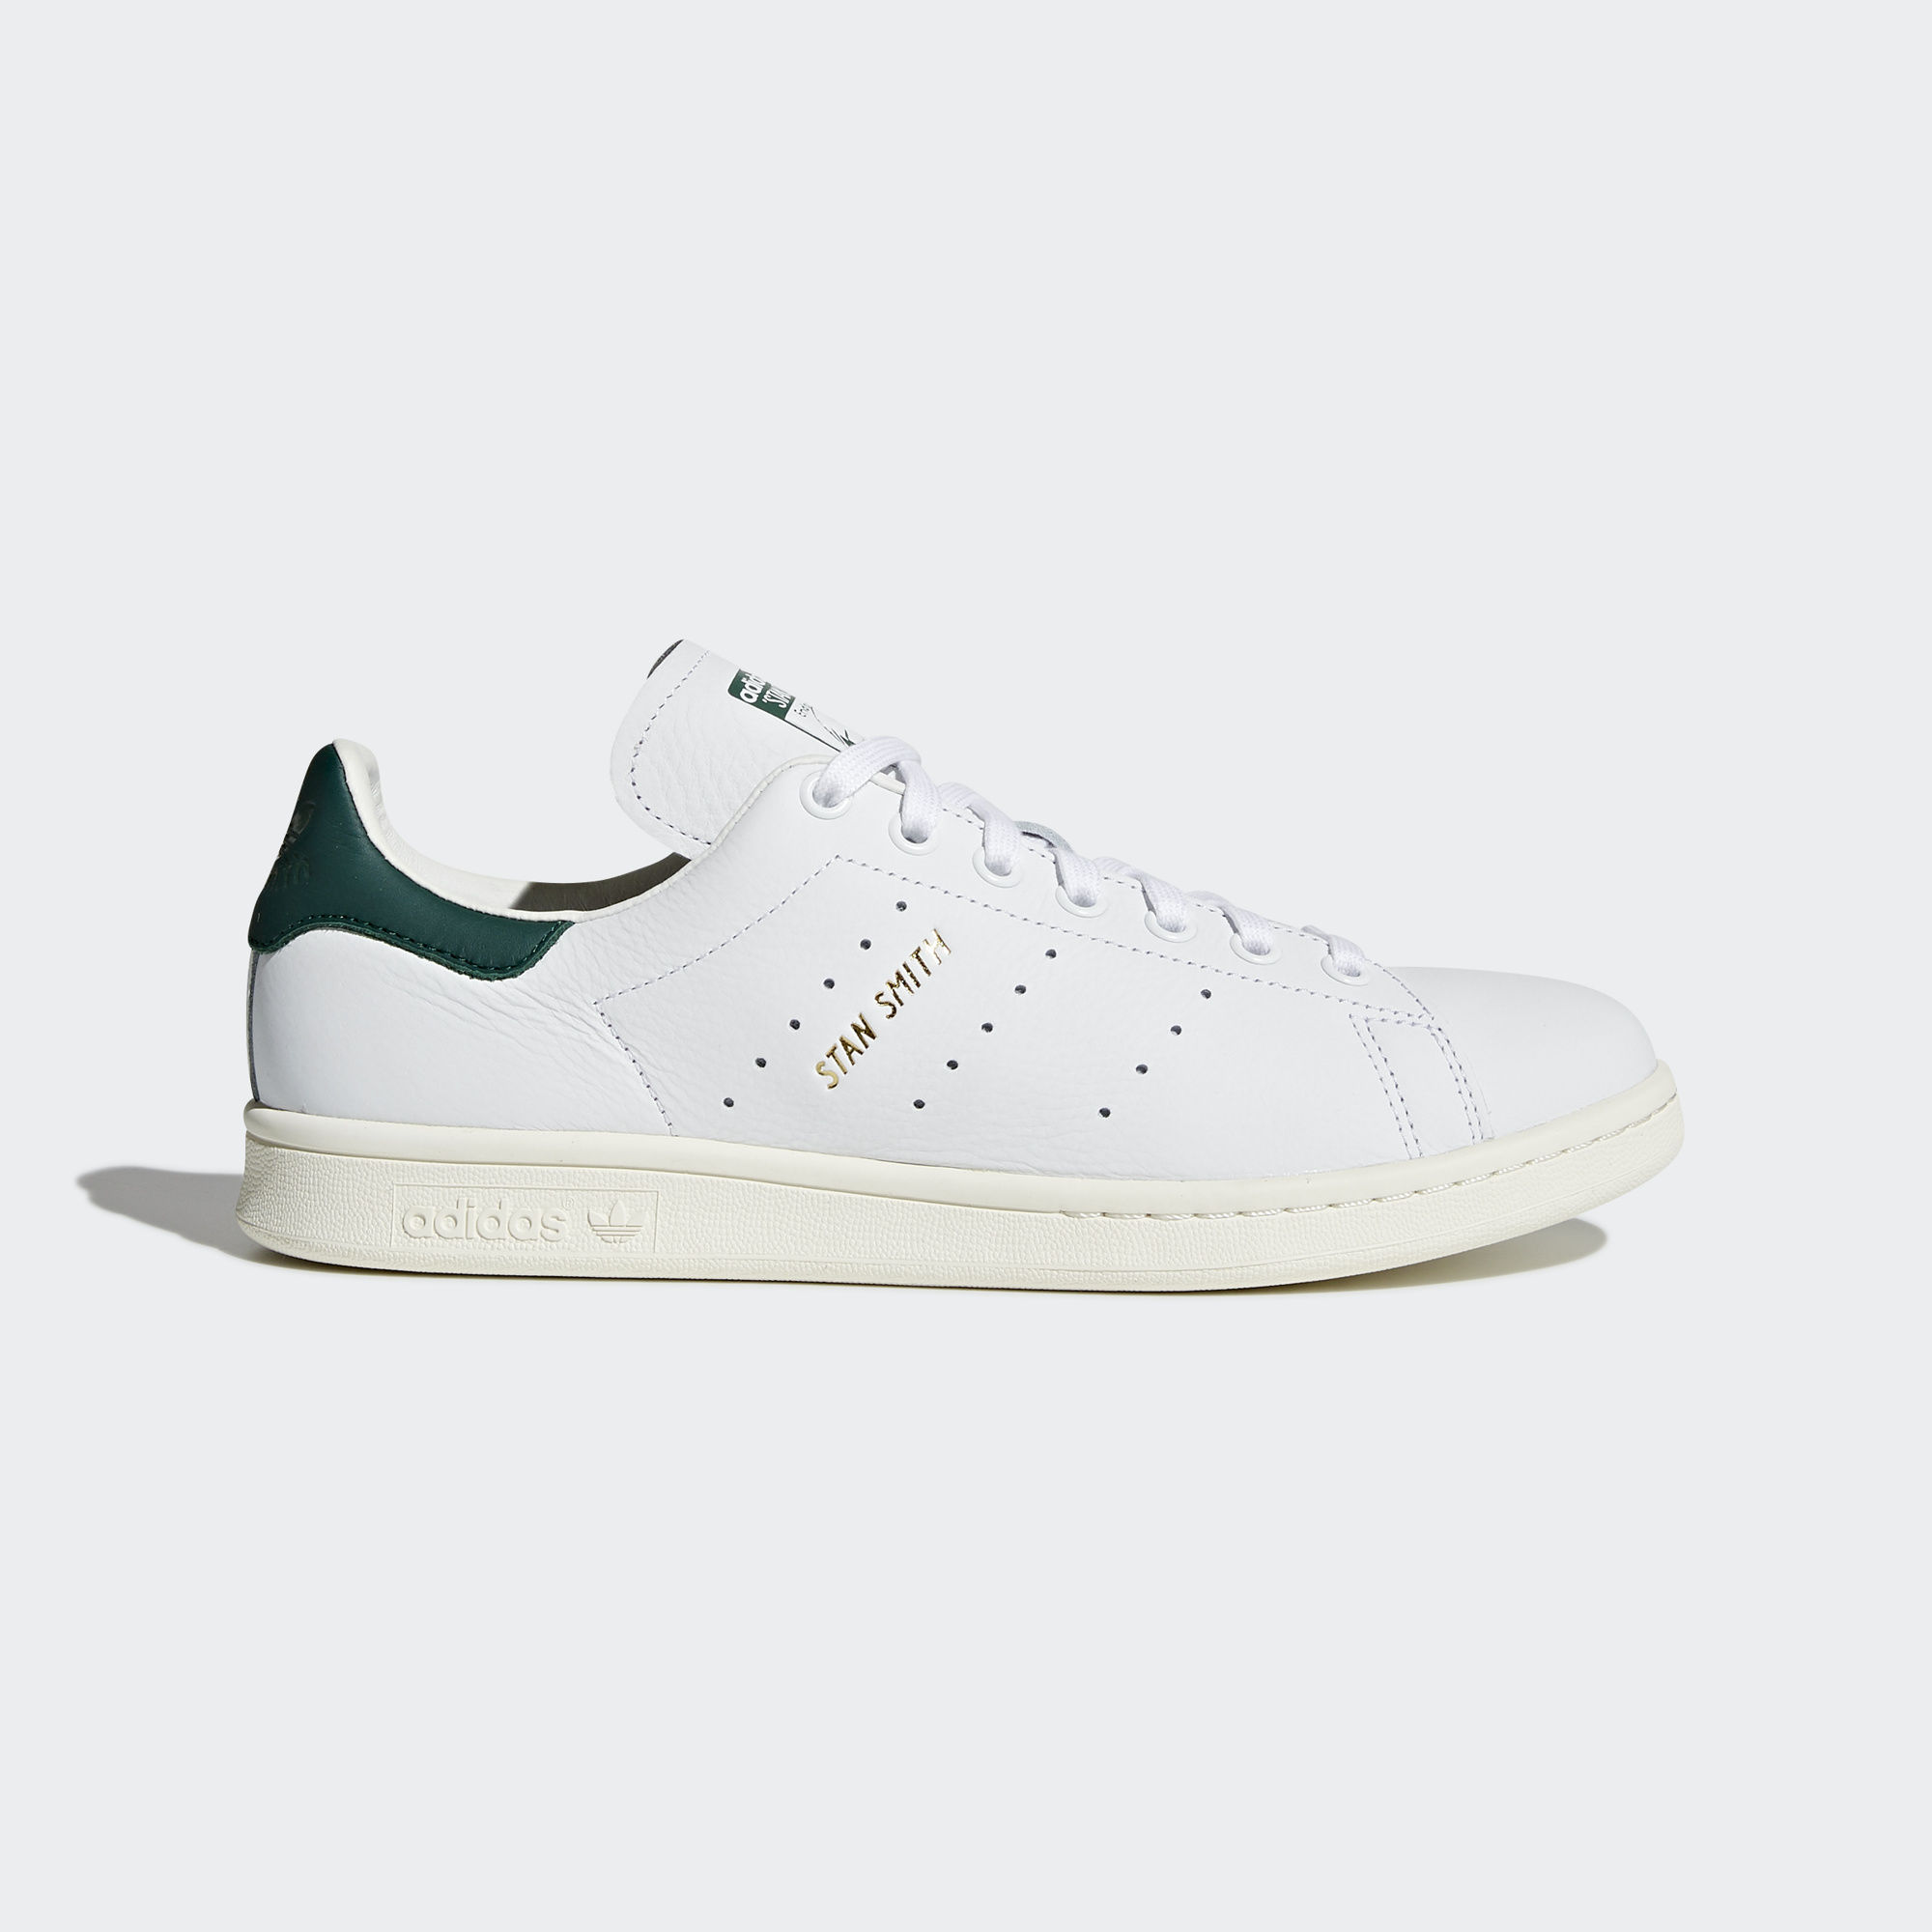 new style 30f54 80d69 Acheter boutique adidas stan smith pas cher